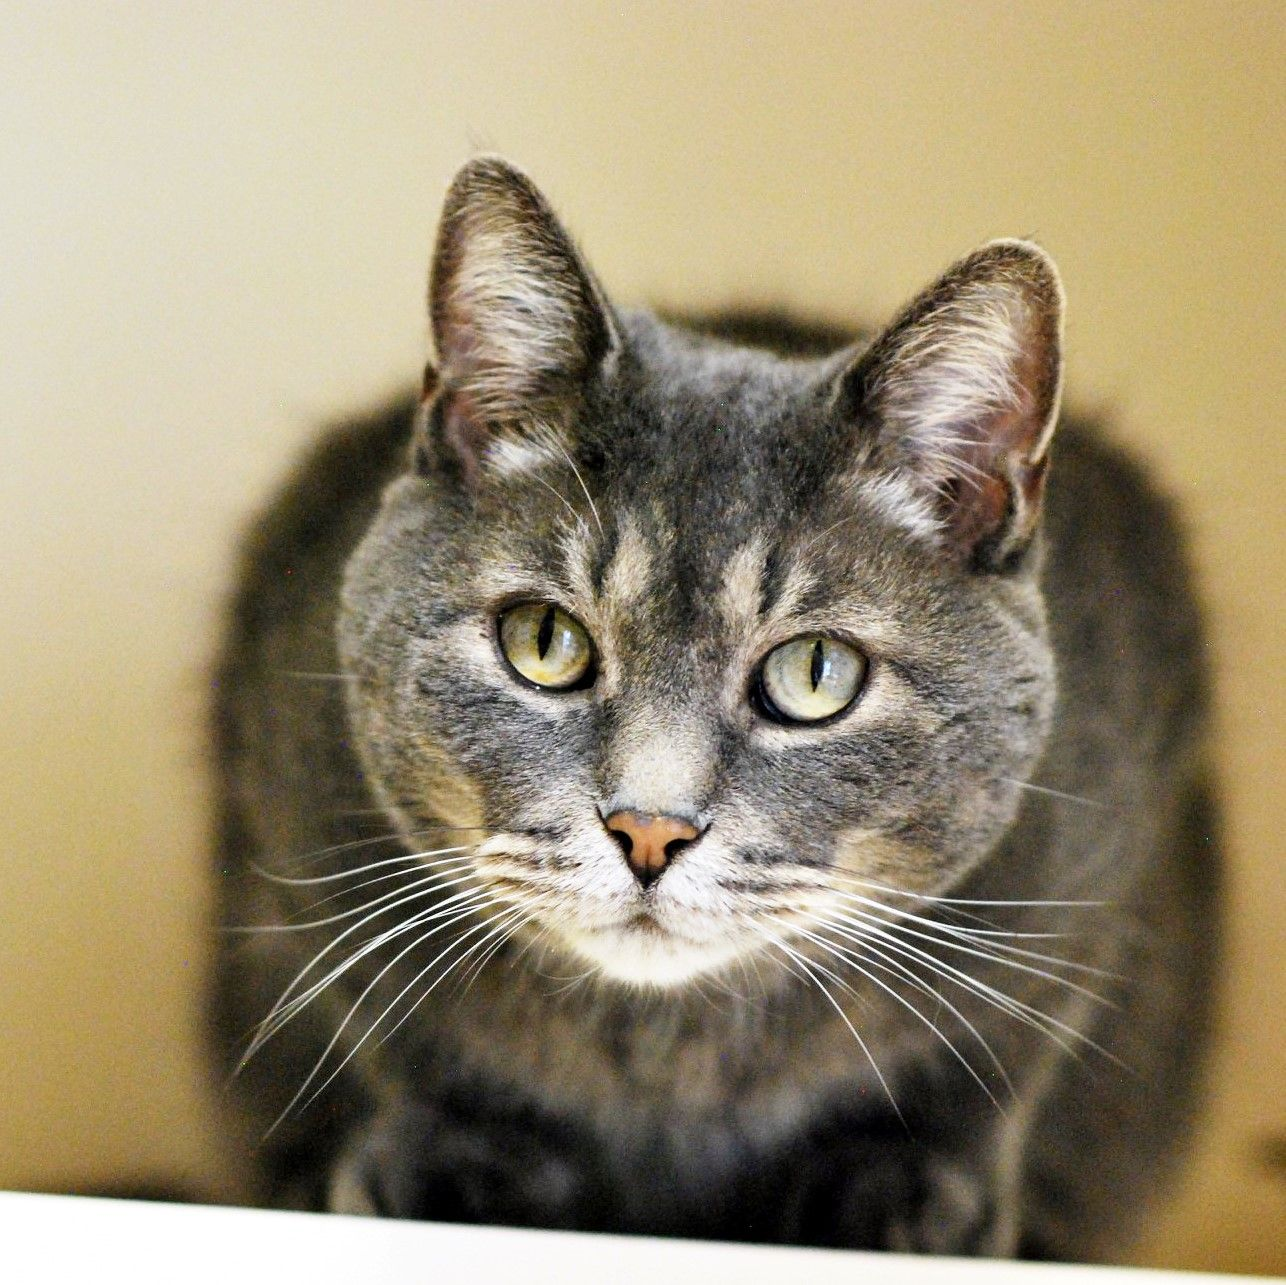 Amstel Pawsitive Match Rescue Foundation Calgary Based Dog And Cat Rescue Cat Adoption Frontline Plus For Cats Cute Cats And Kittens